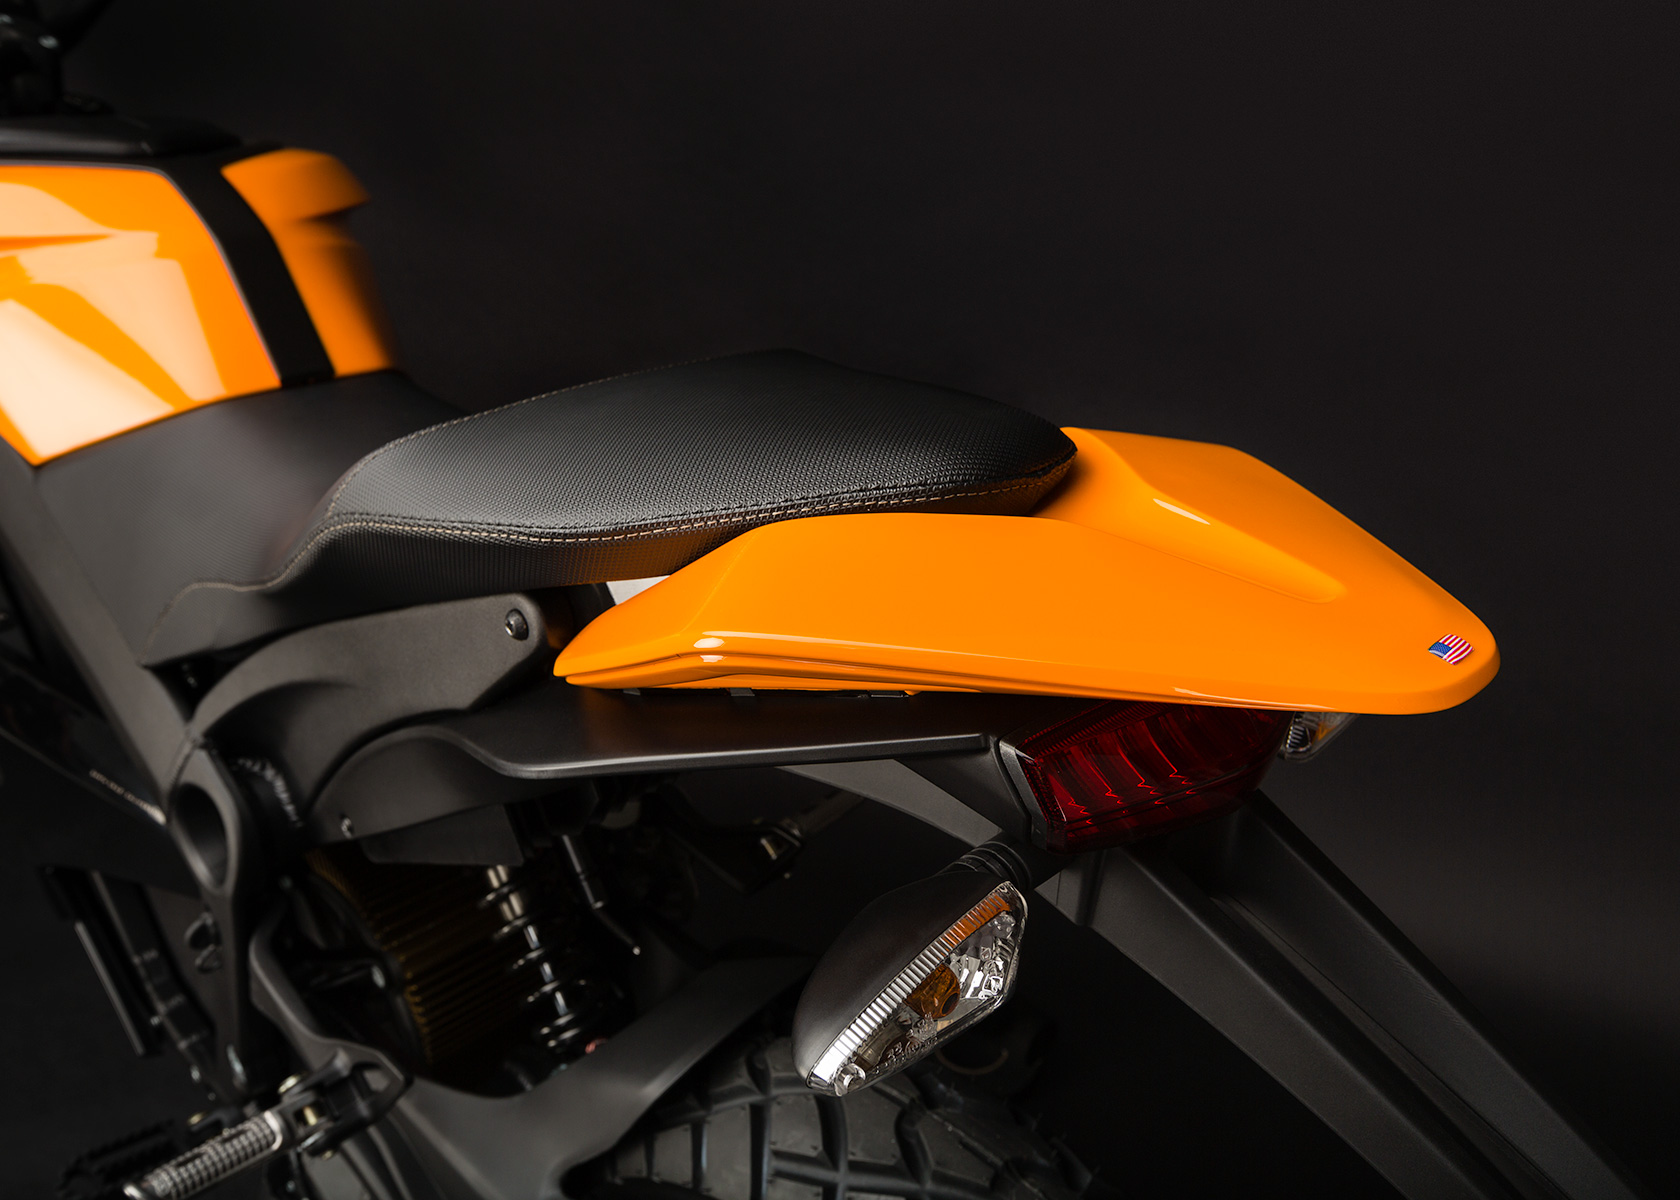 '.2013 Zero DS Electric Motorcycle: Tail.'